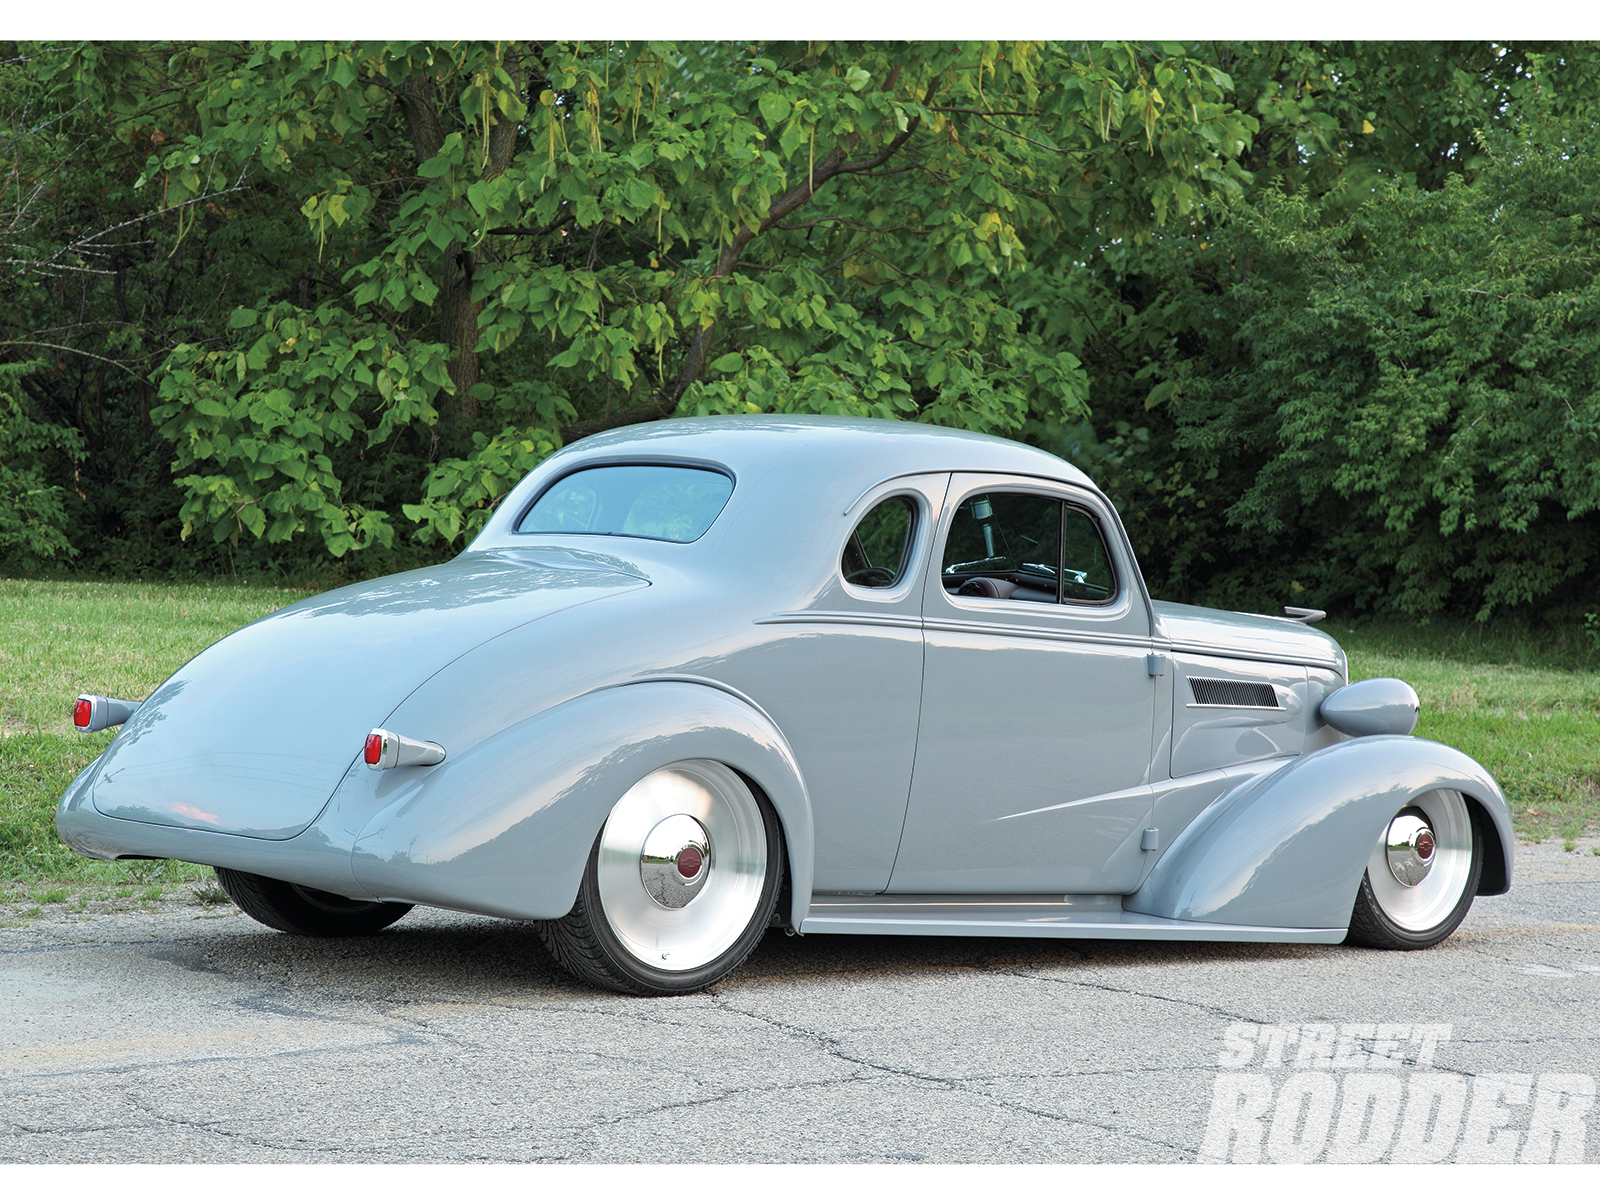 1937 Chevy Coupe - Homer's Odyssey - Hot Rod Network